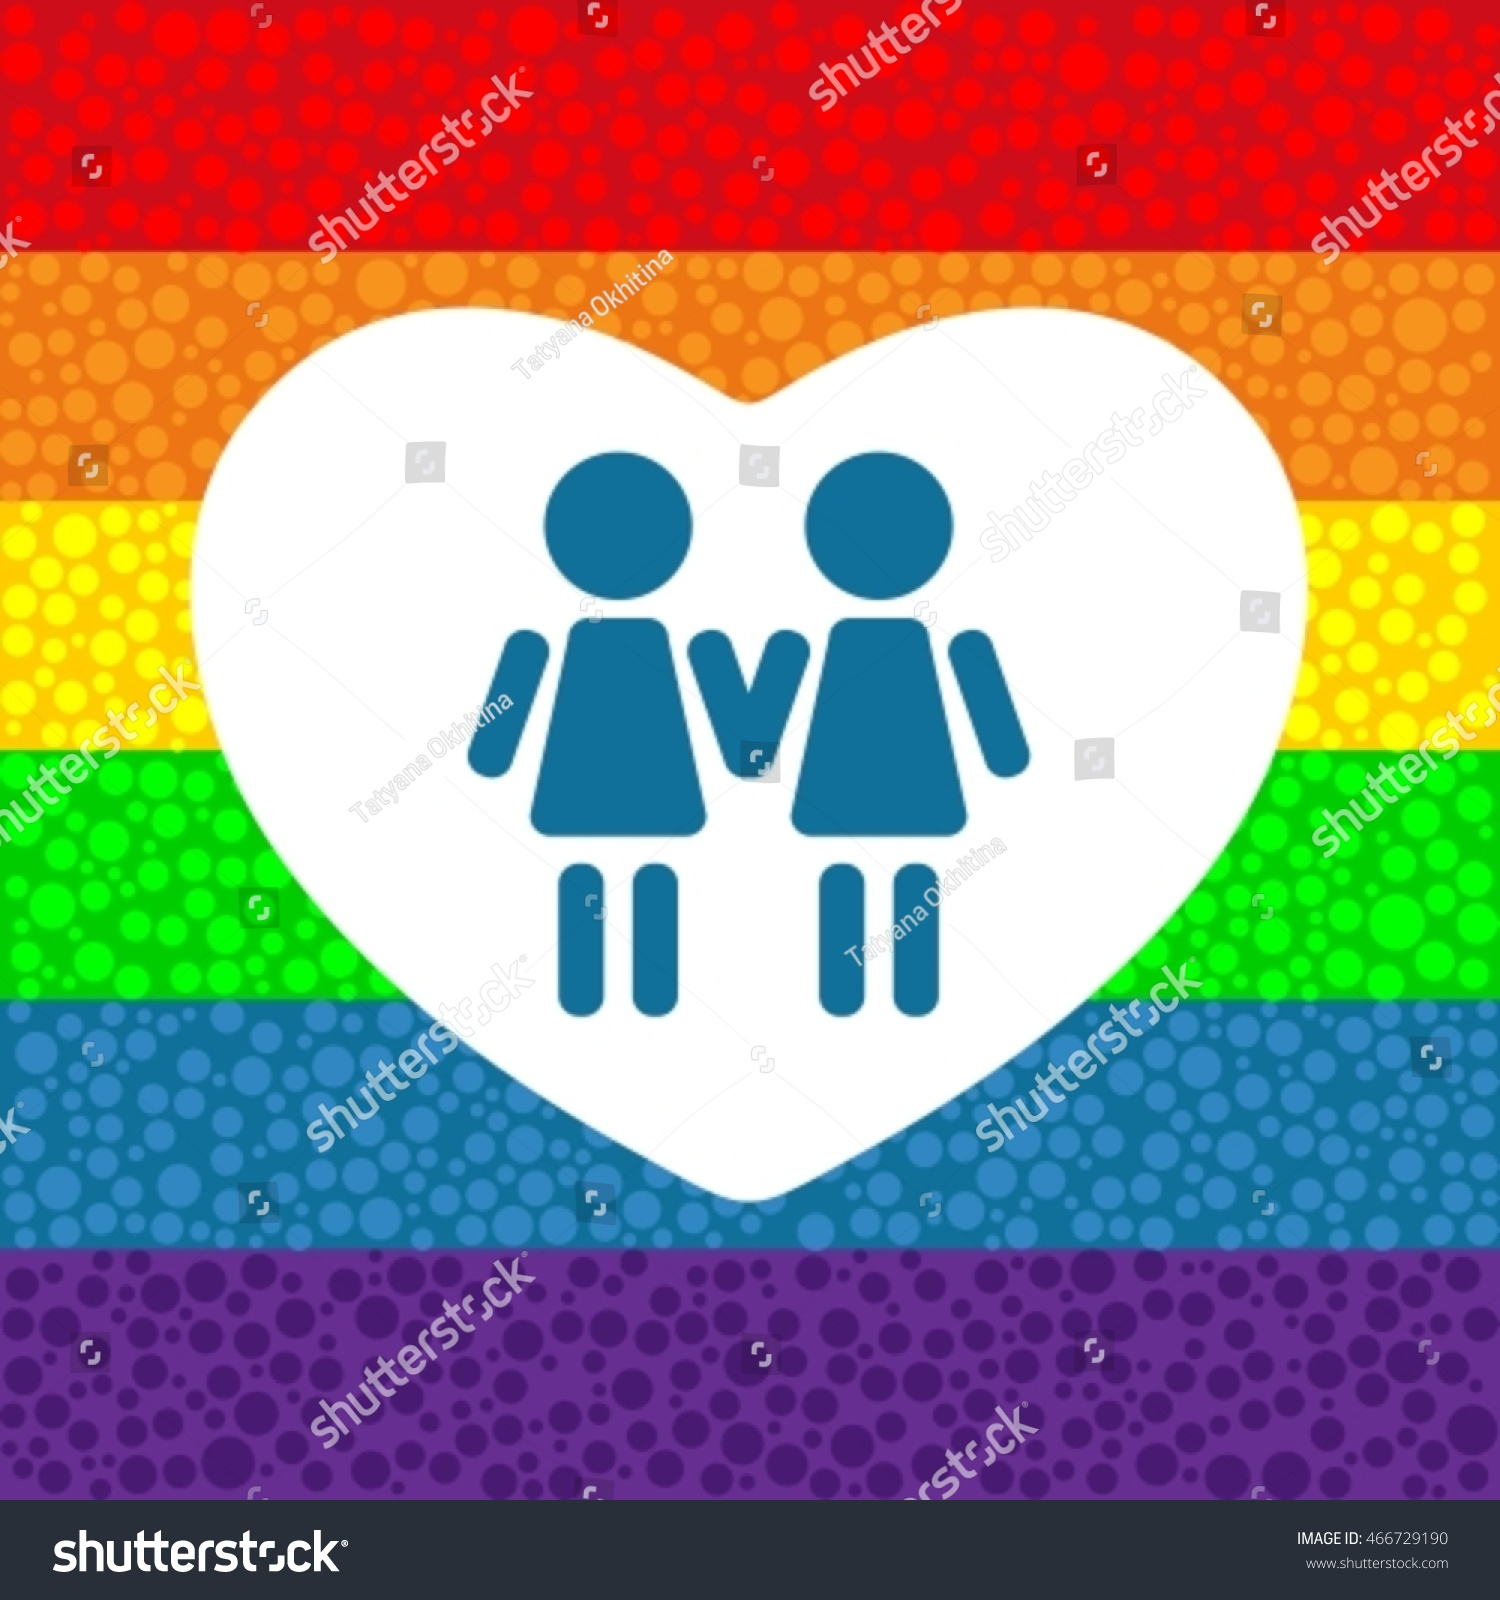 gay women couple isolated on white background design element for valentines day card lgbt